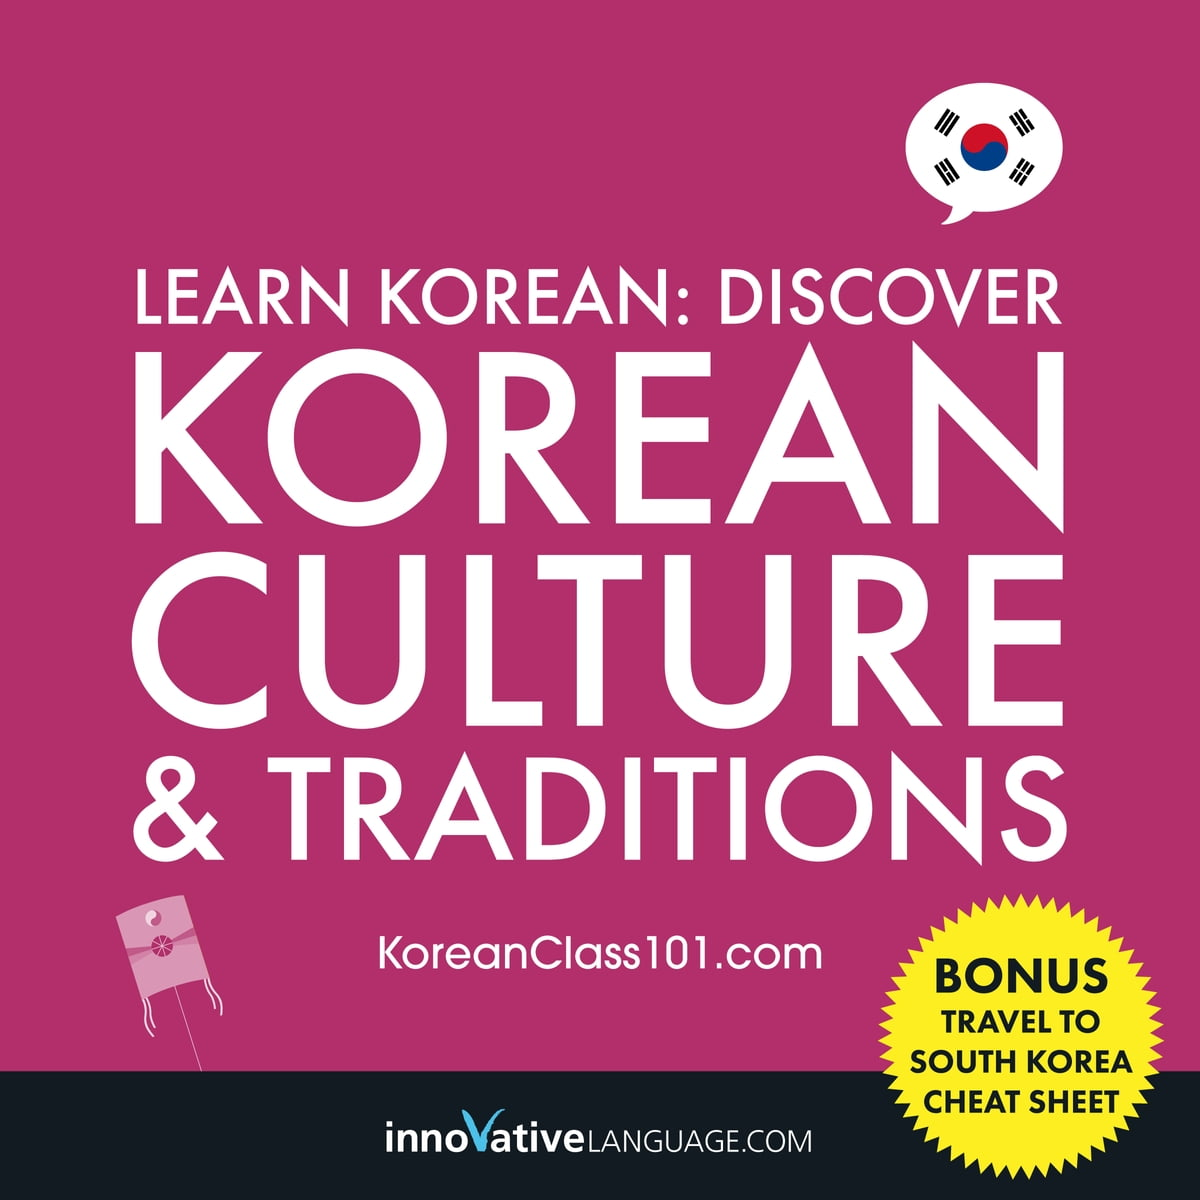 Learn Korean: Discover Korean Culture & Traditions audiobook by Innovative  Language Learning - Rakuten Kobo